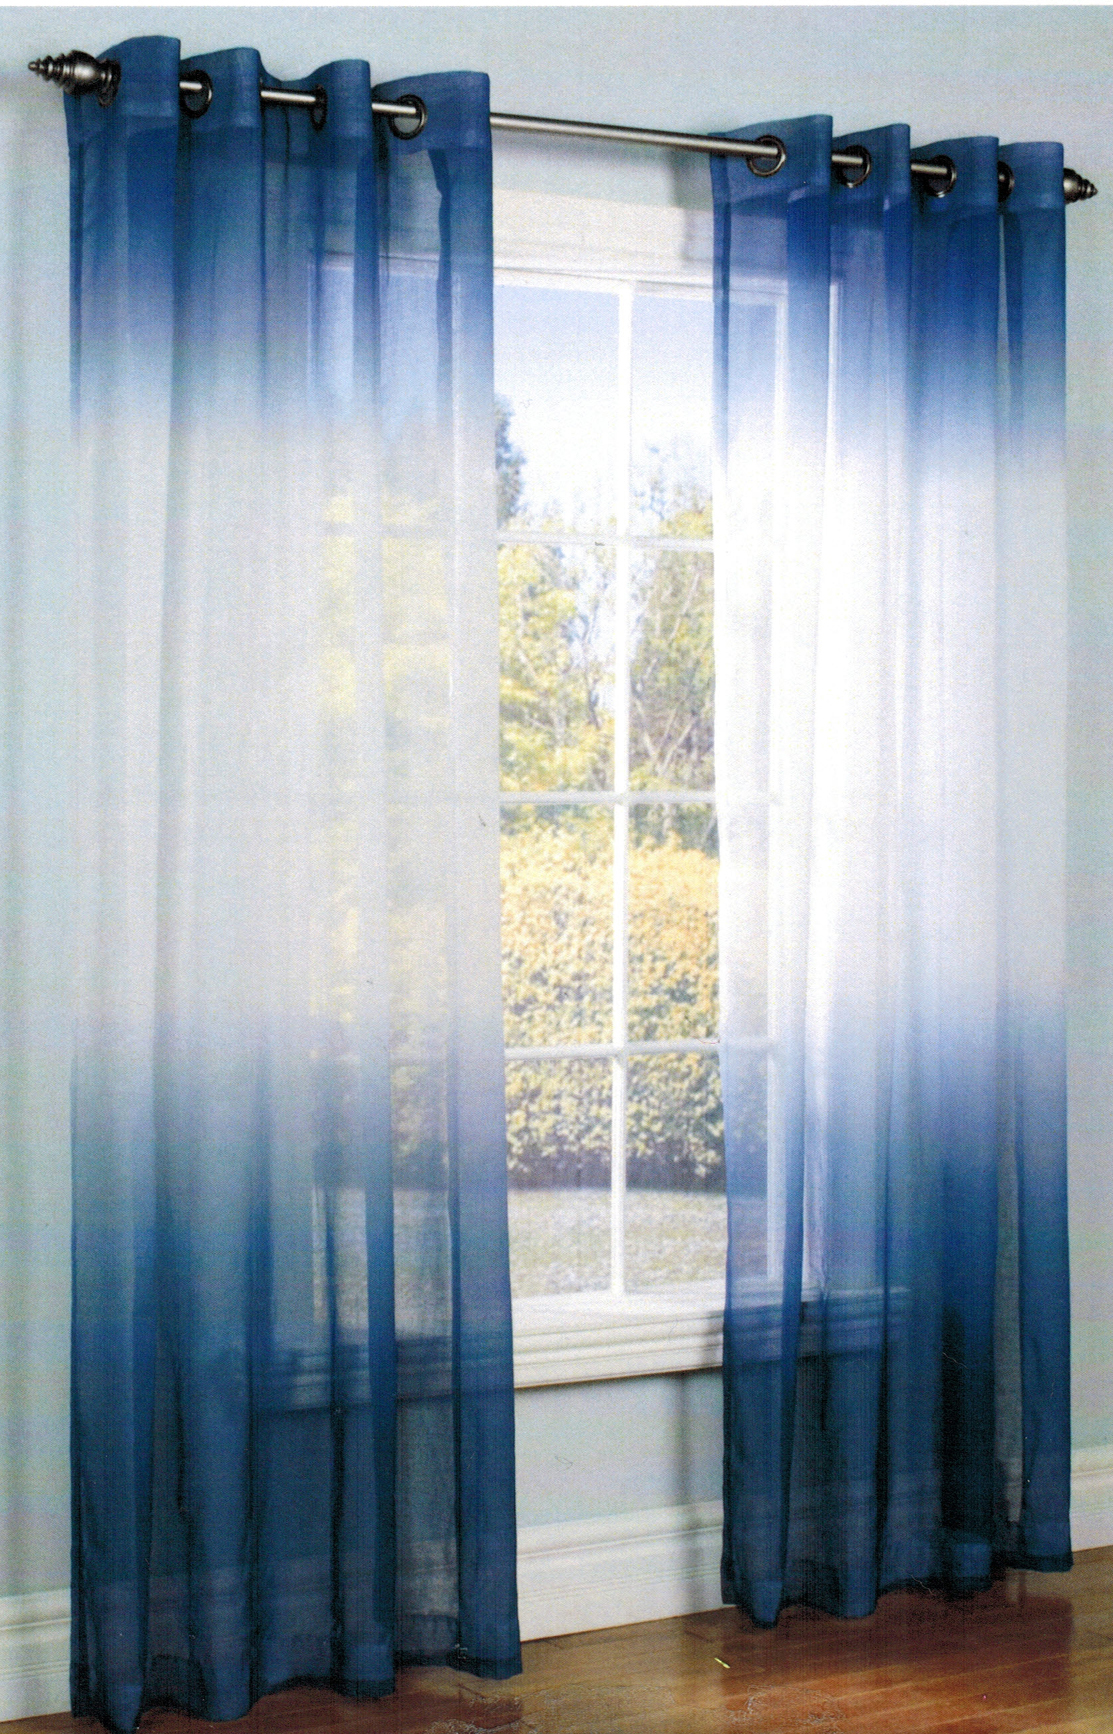 color colors decorate room ideas advice decor fall curtains autumn design decorating inspiration rooms cozy